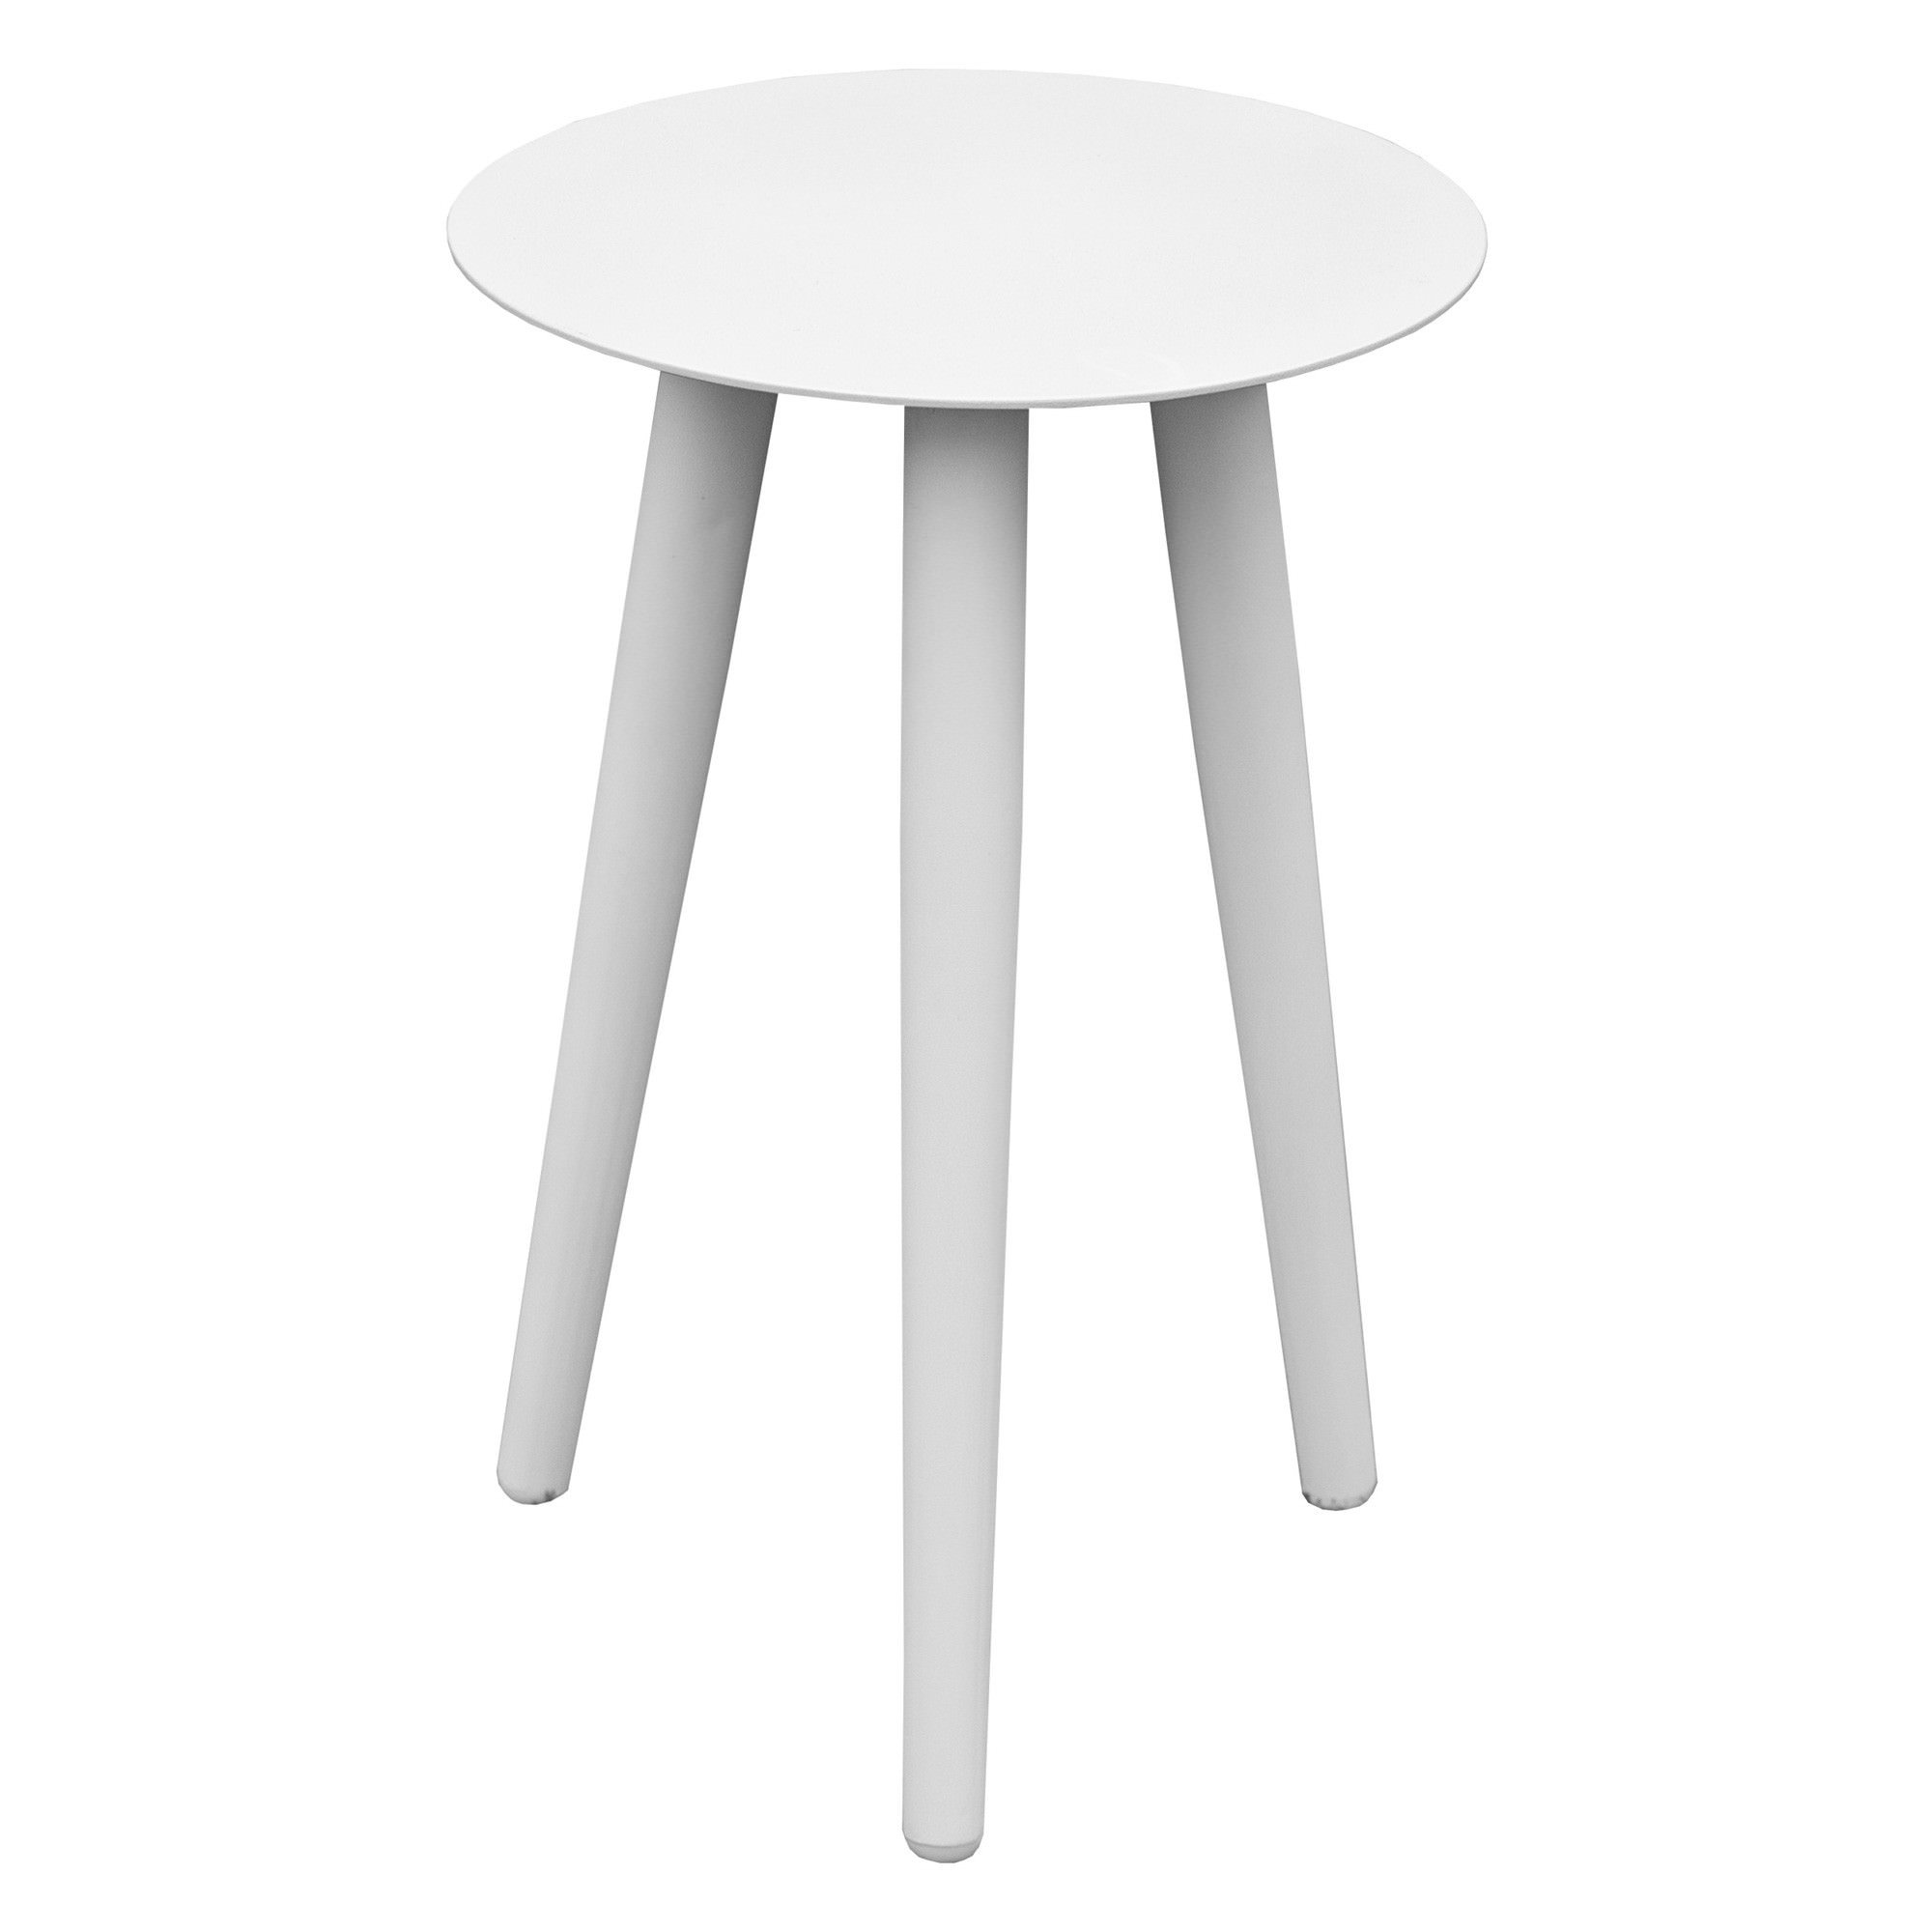 Wesley Aluminium Indoor / Outdoor Side Table, 32cm, White